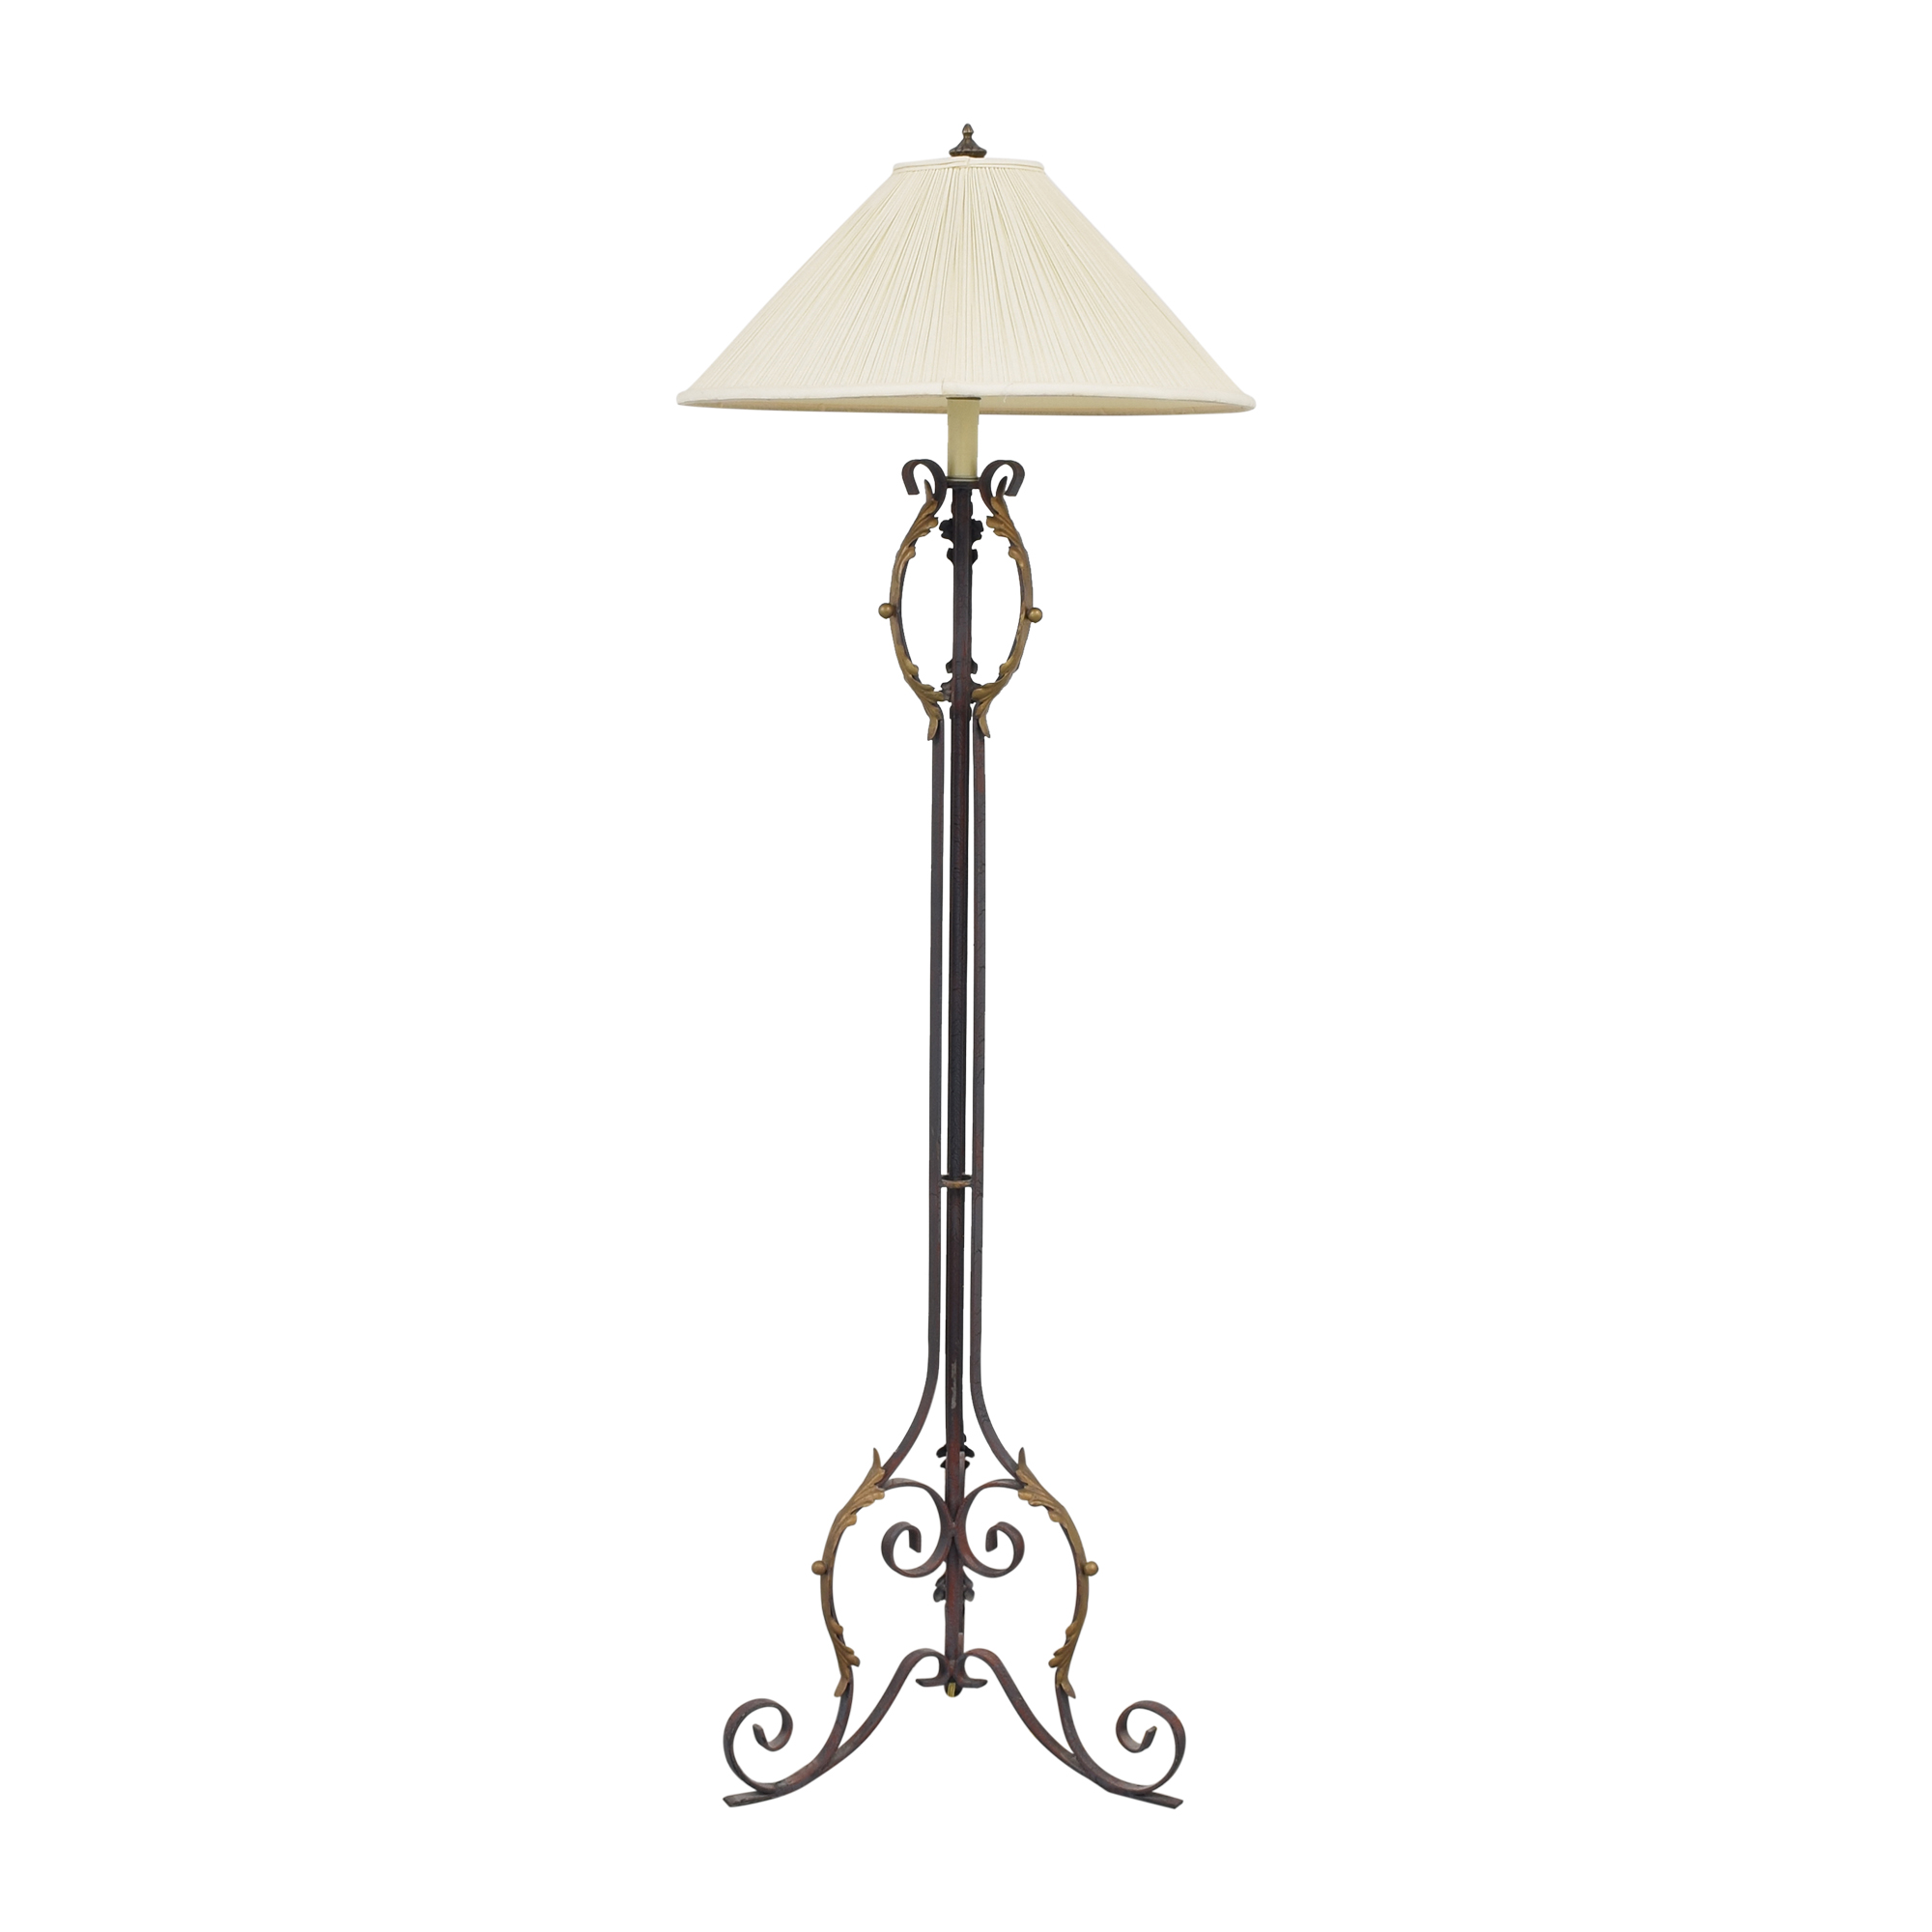 buy John-Richard Lighting Floor Lamp John-Richard Decor